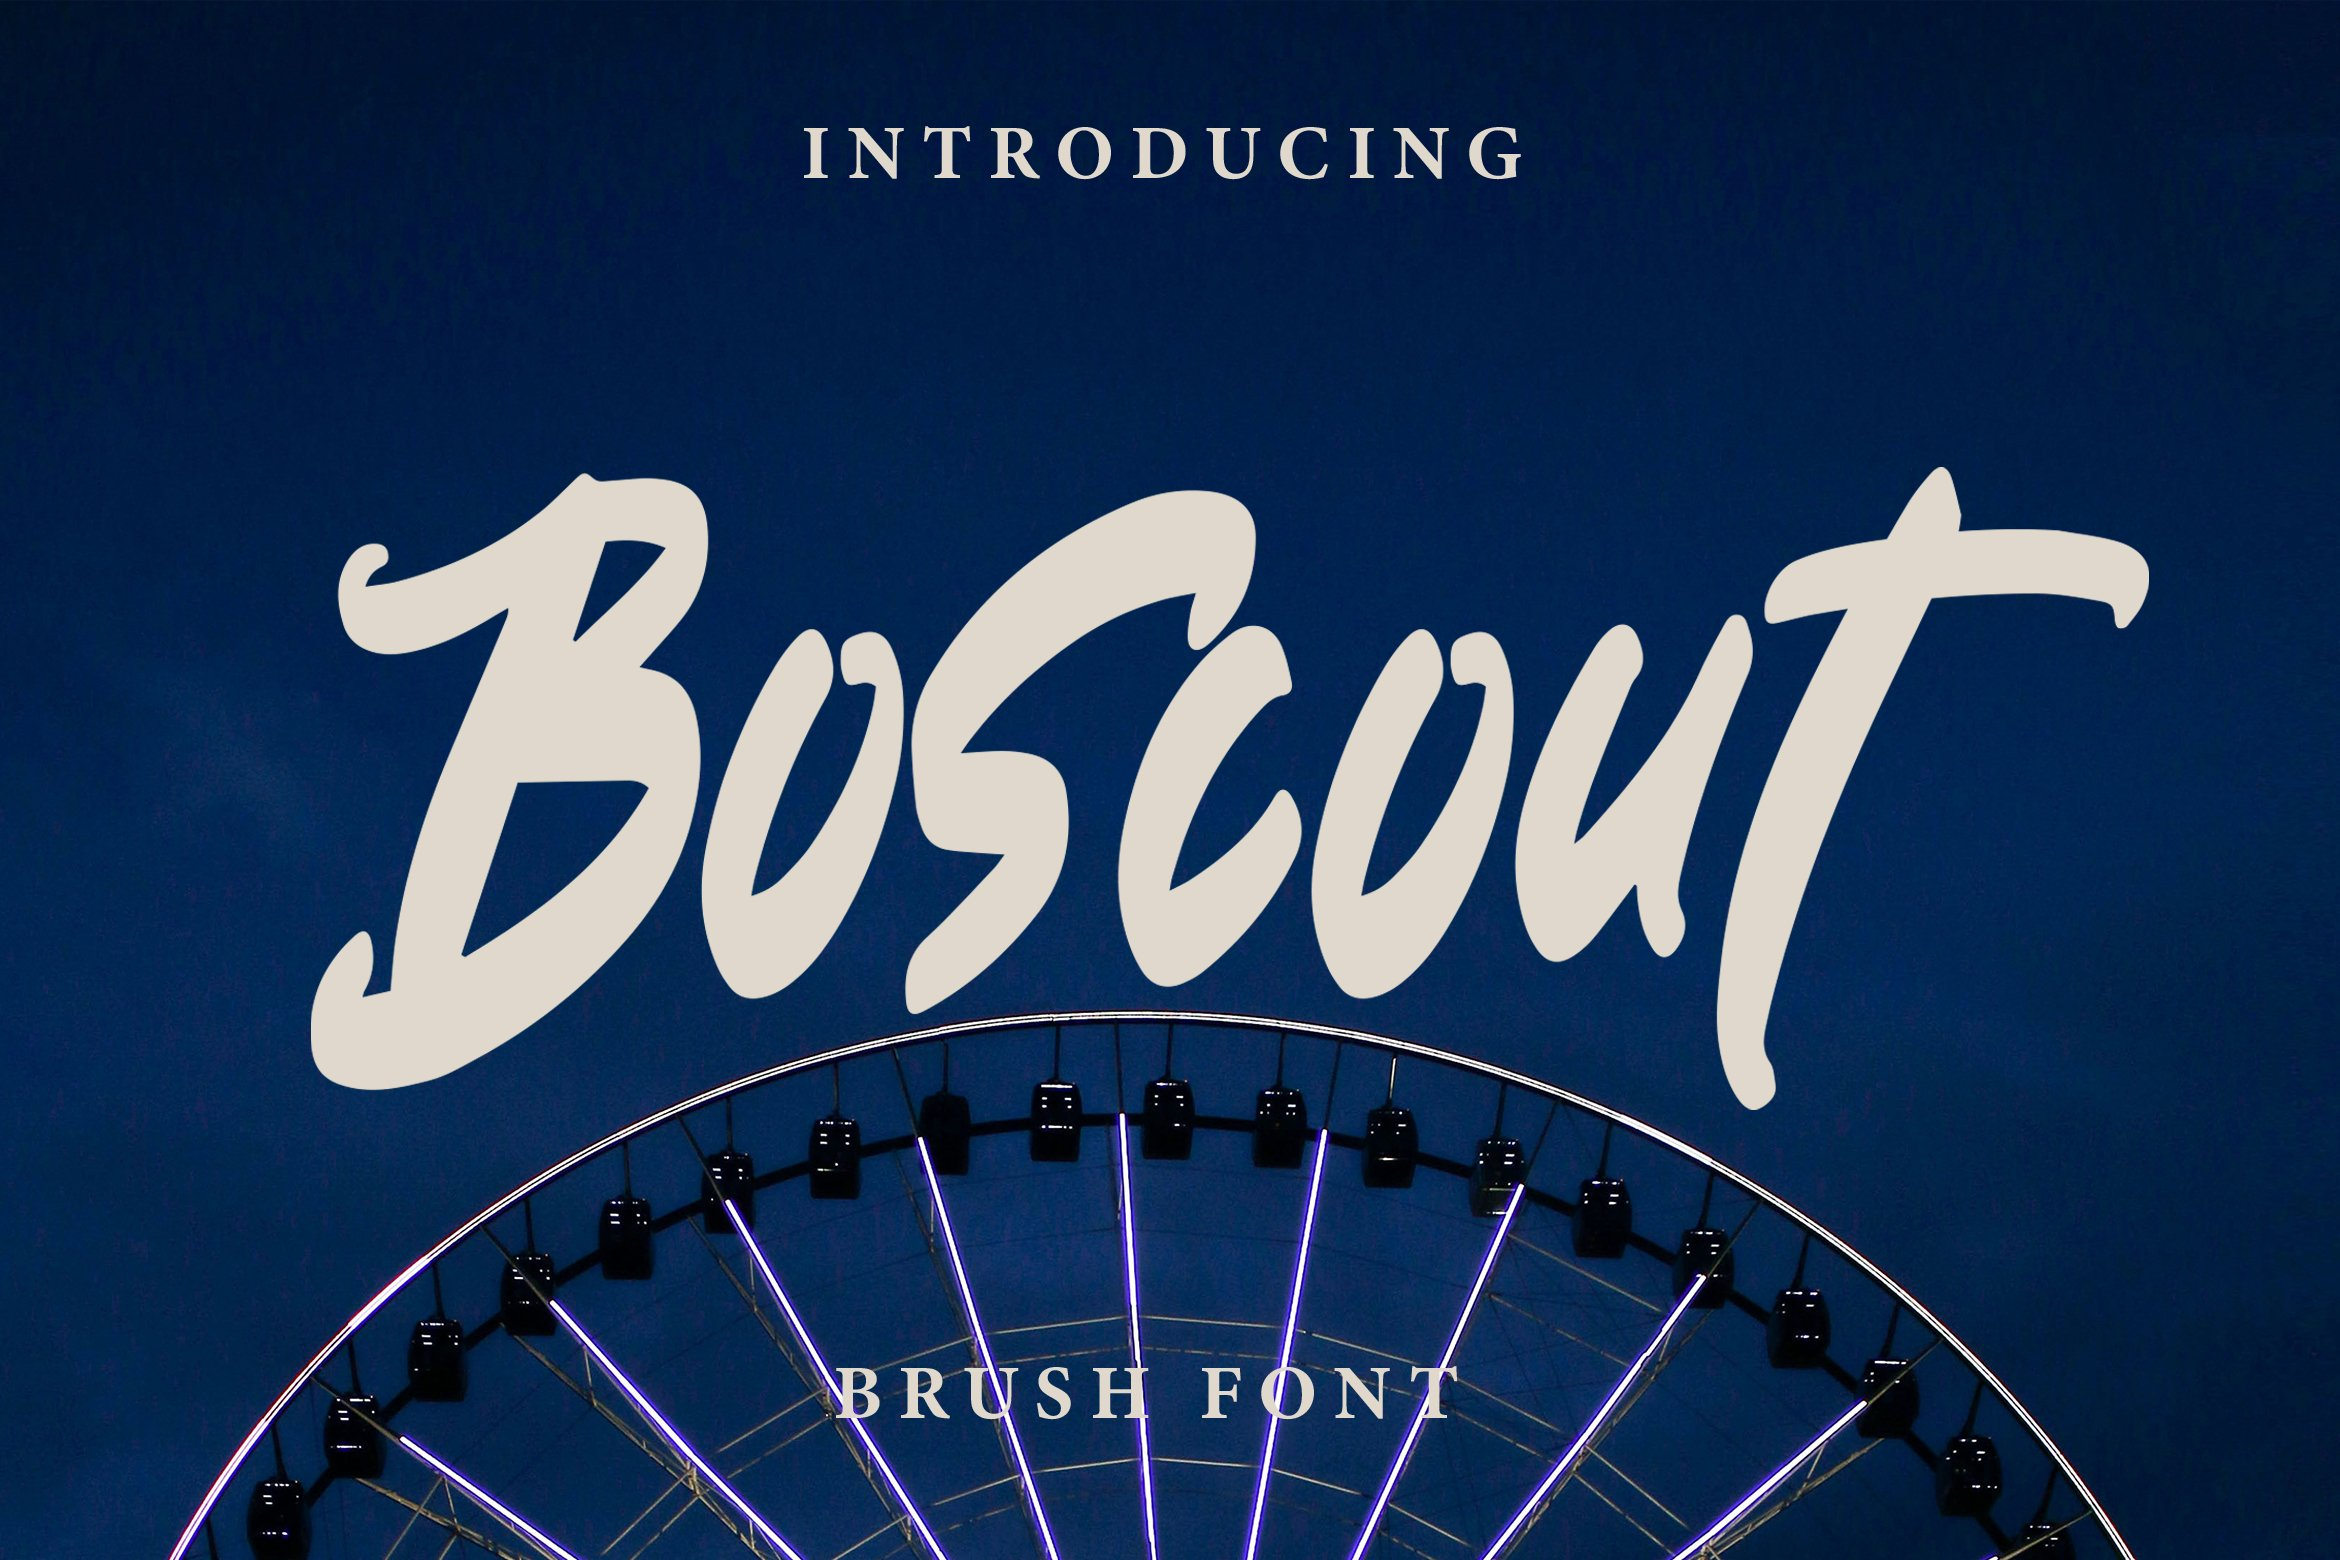 Boscout - Brush Font example image 1